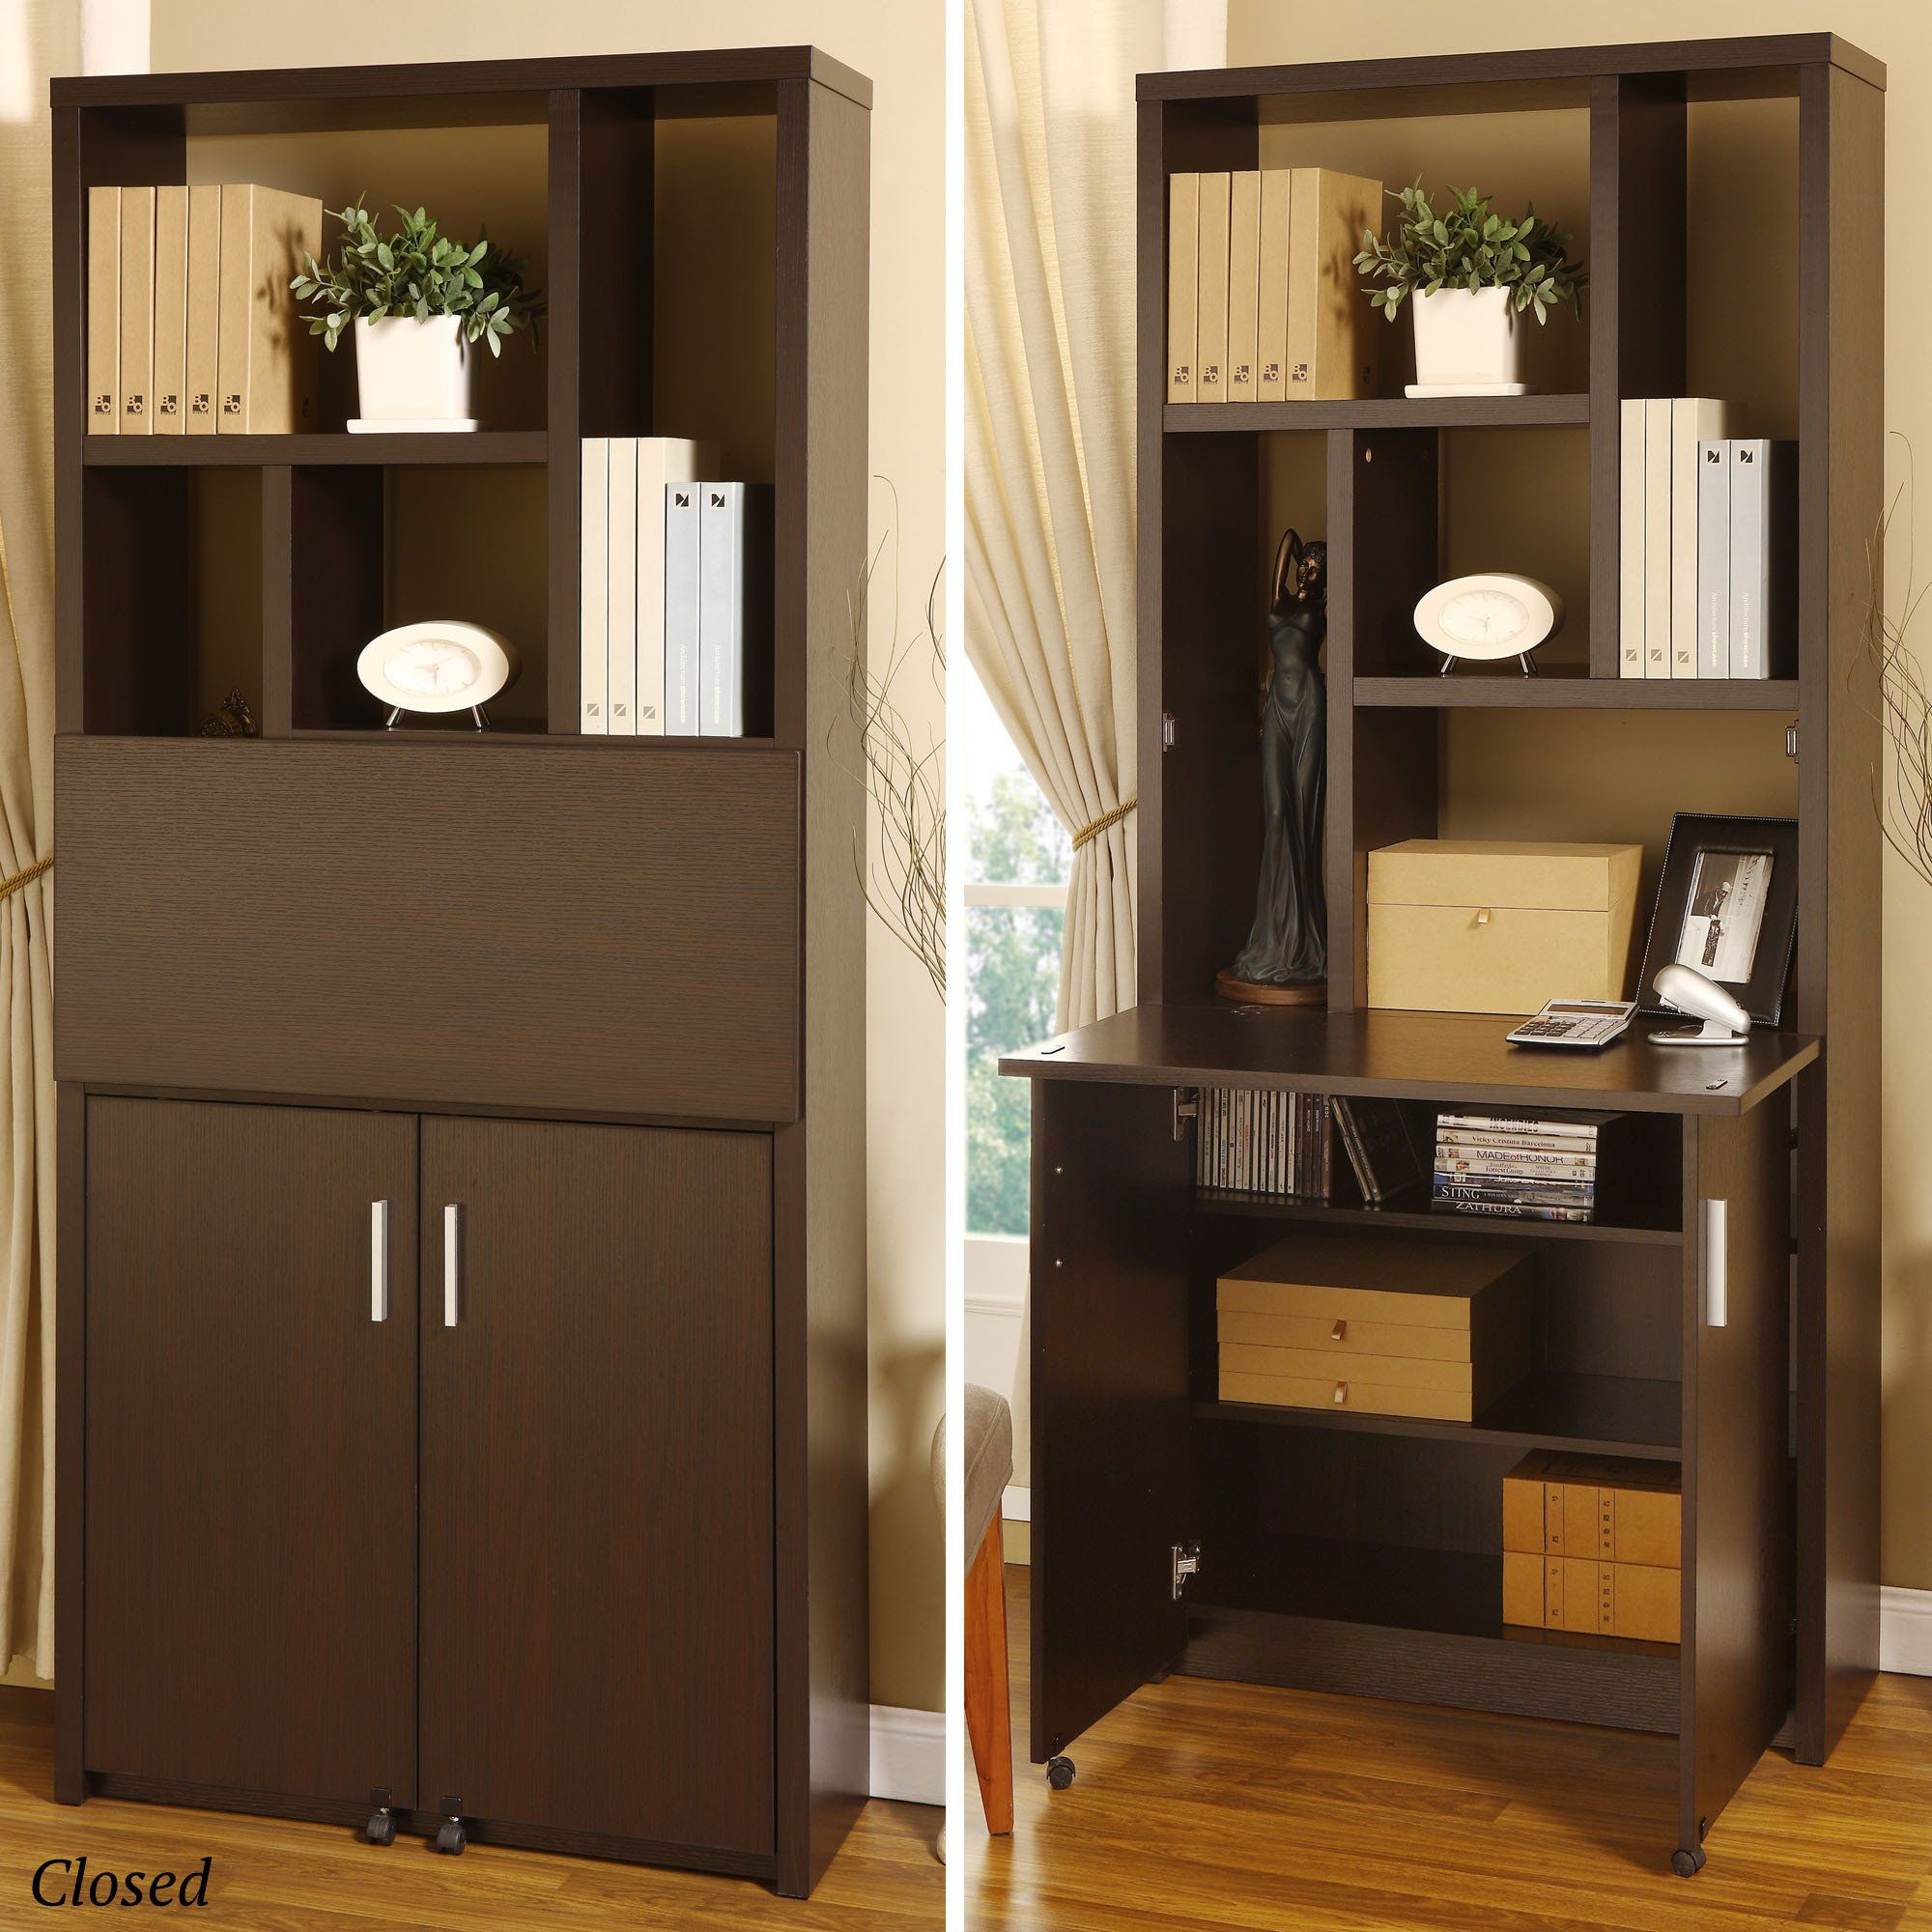 Hidden Fold Down Desk Office Storage Small Space In A Tiny House Desks For Small Spaces Bookshelf Desk Ikea Desk